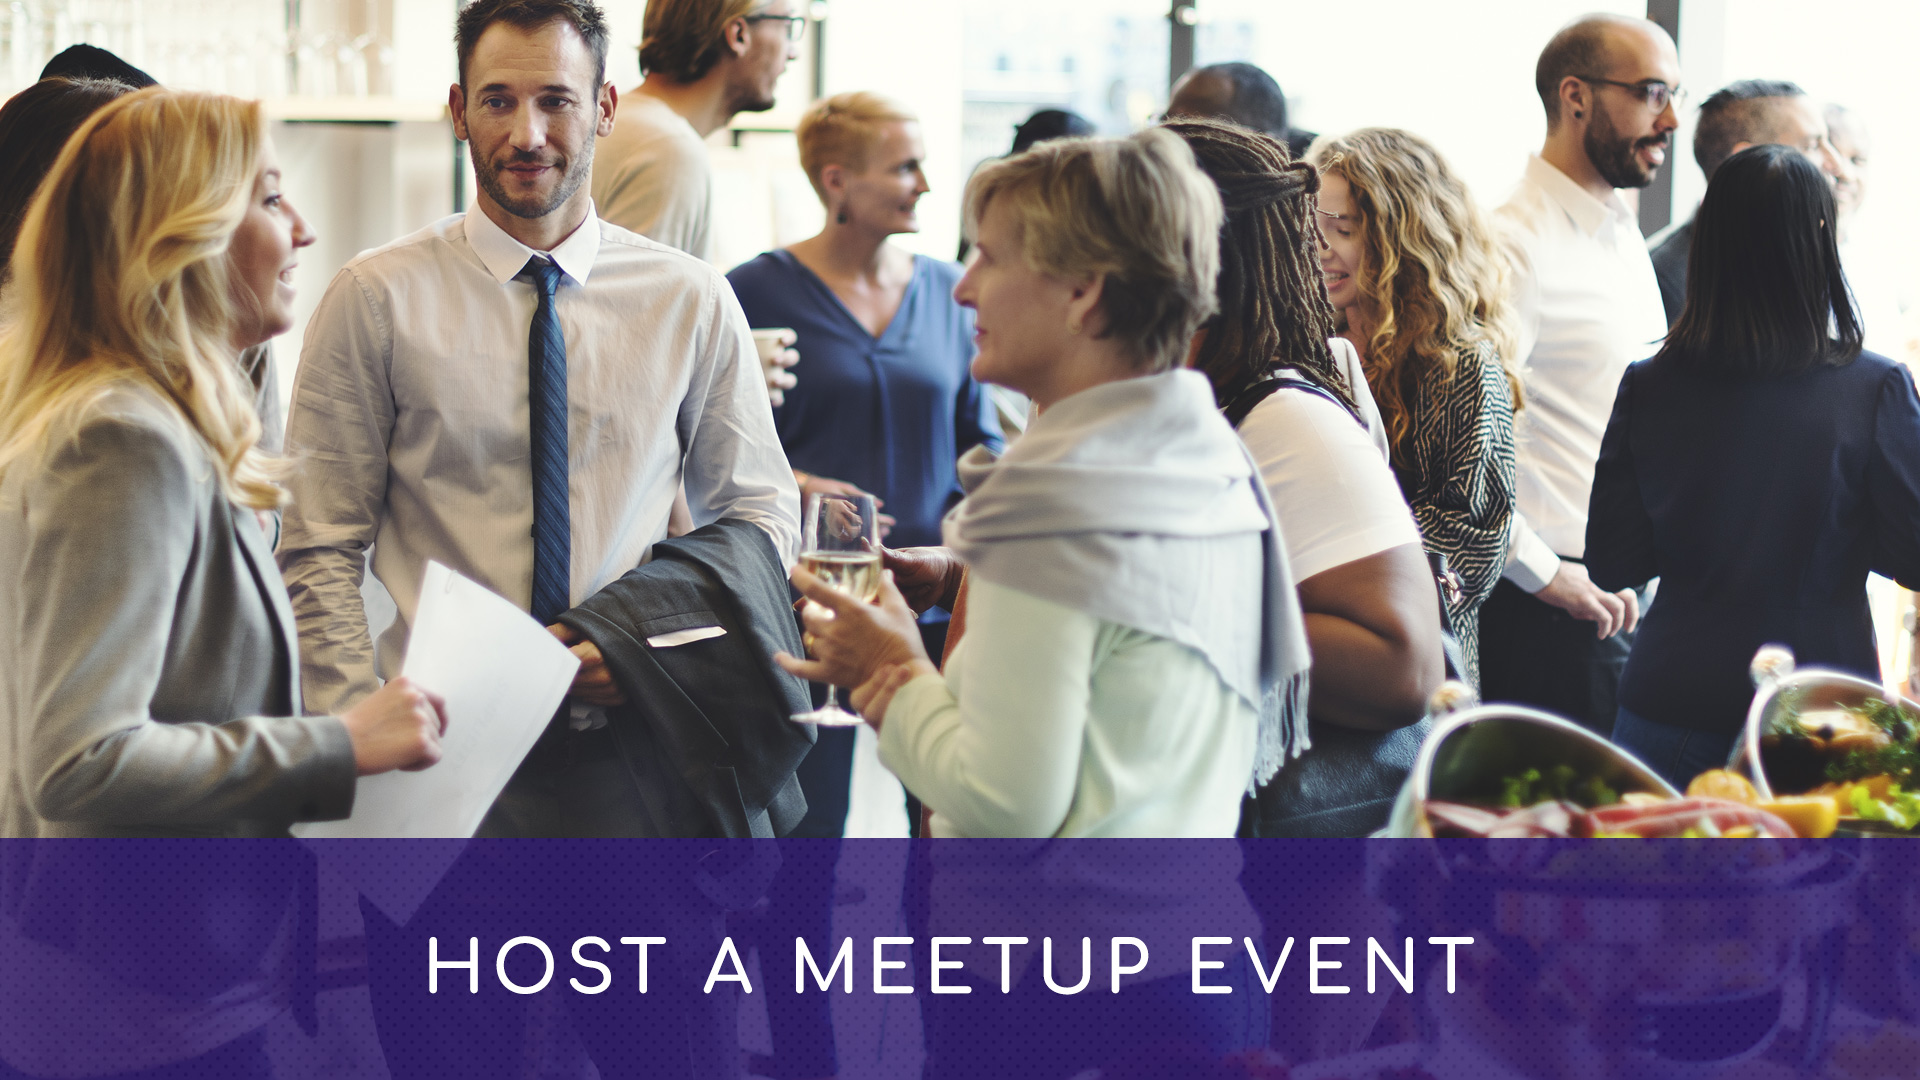 Host a Meetup Event (Once It's Safe)